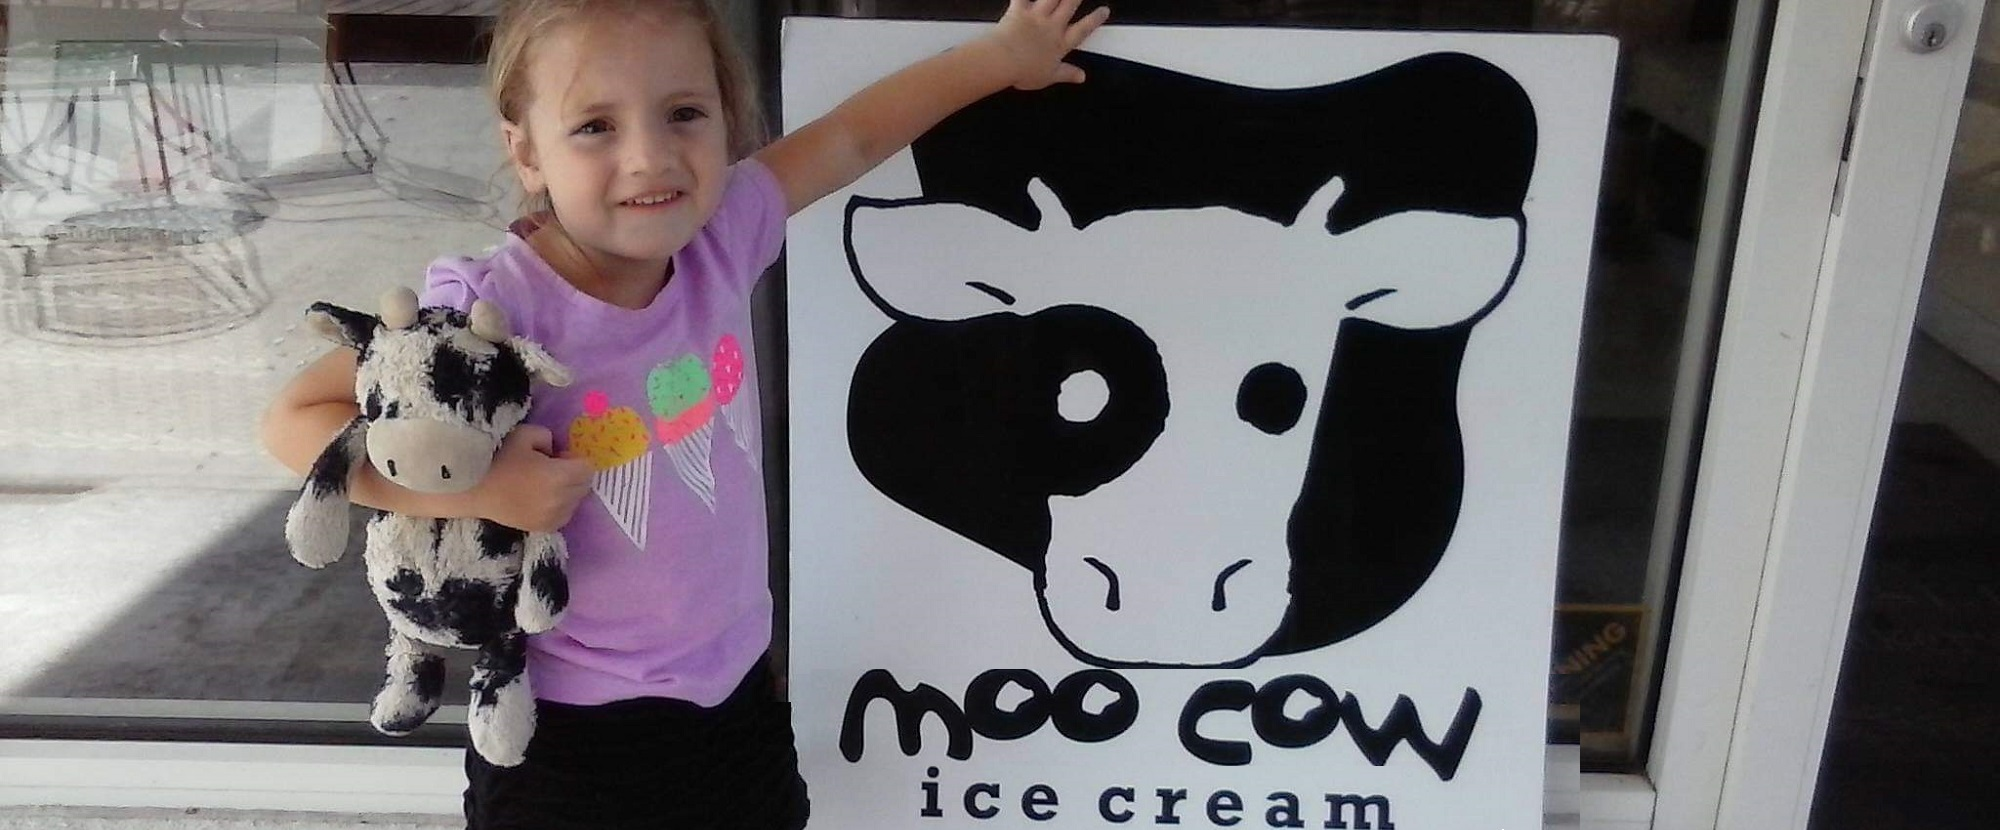 We Love Moo Cow